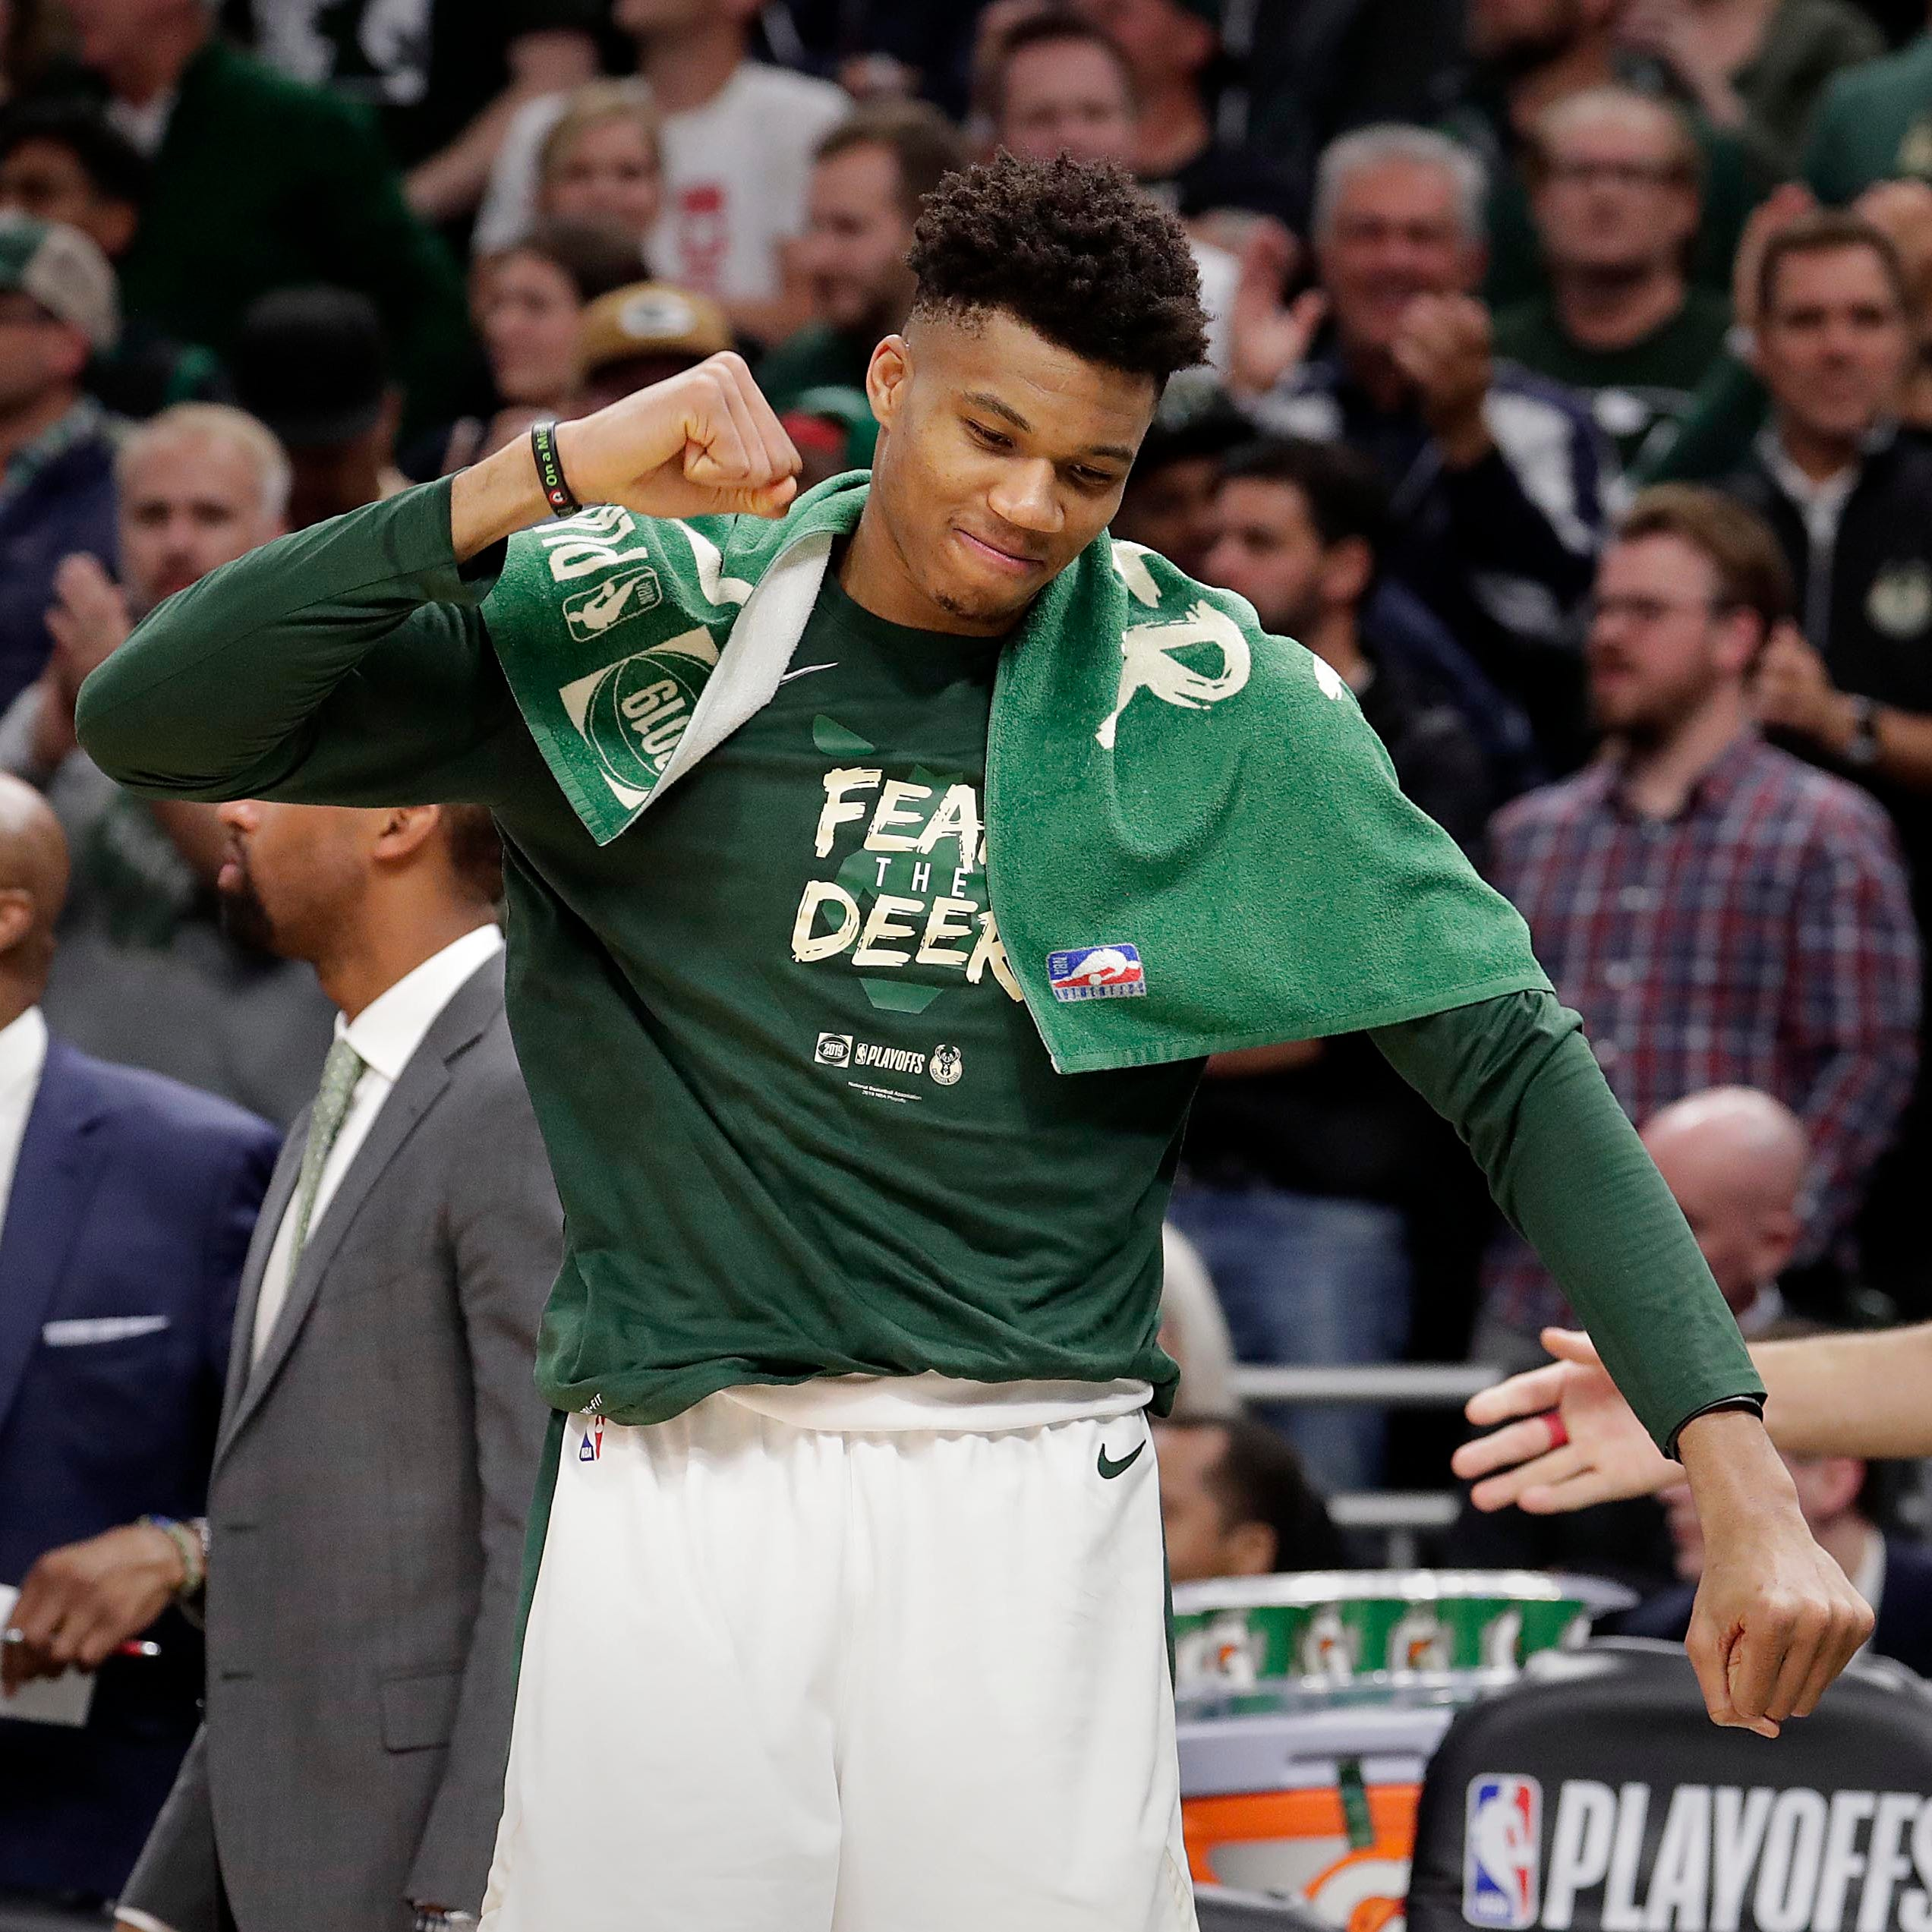 The Bucks' opponent in the conference finals is still to be determined, but the scheduling options are set